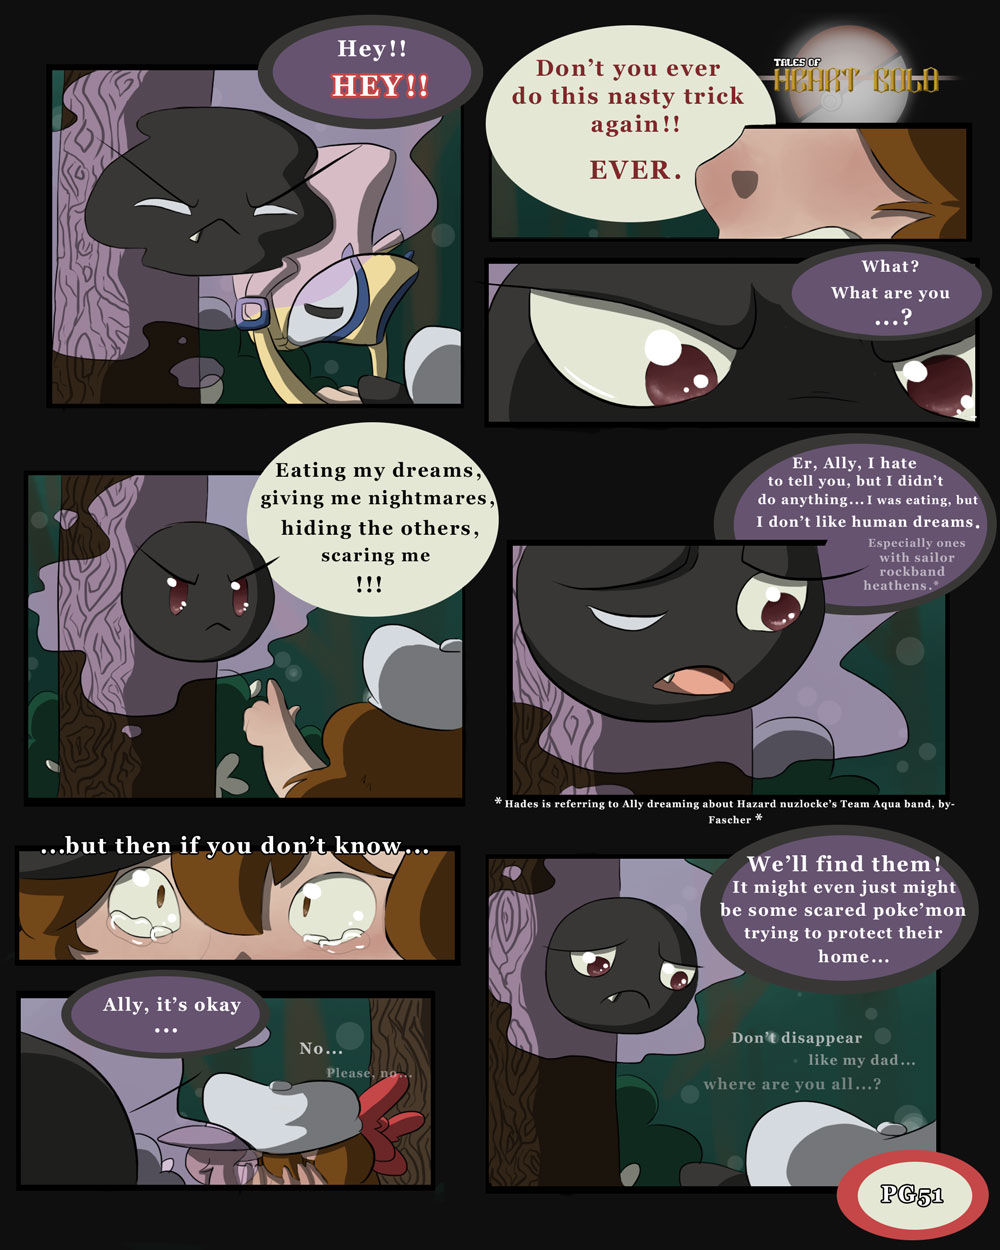 Into Woods PG5: Don't Ever.